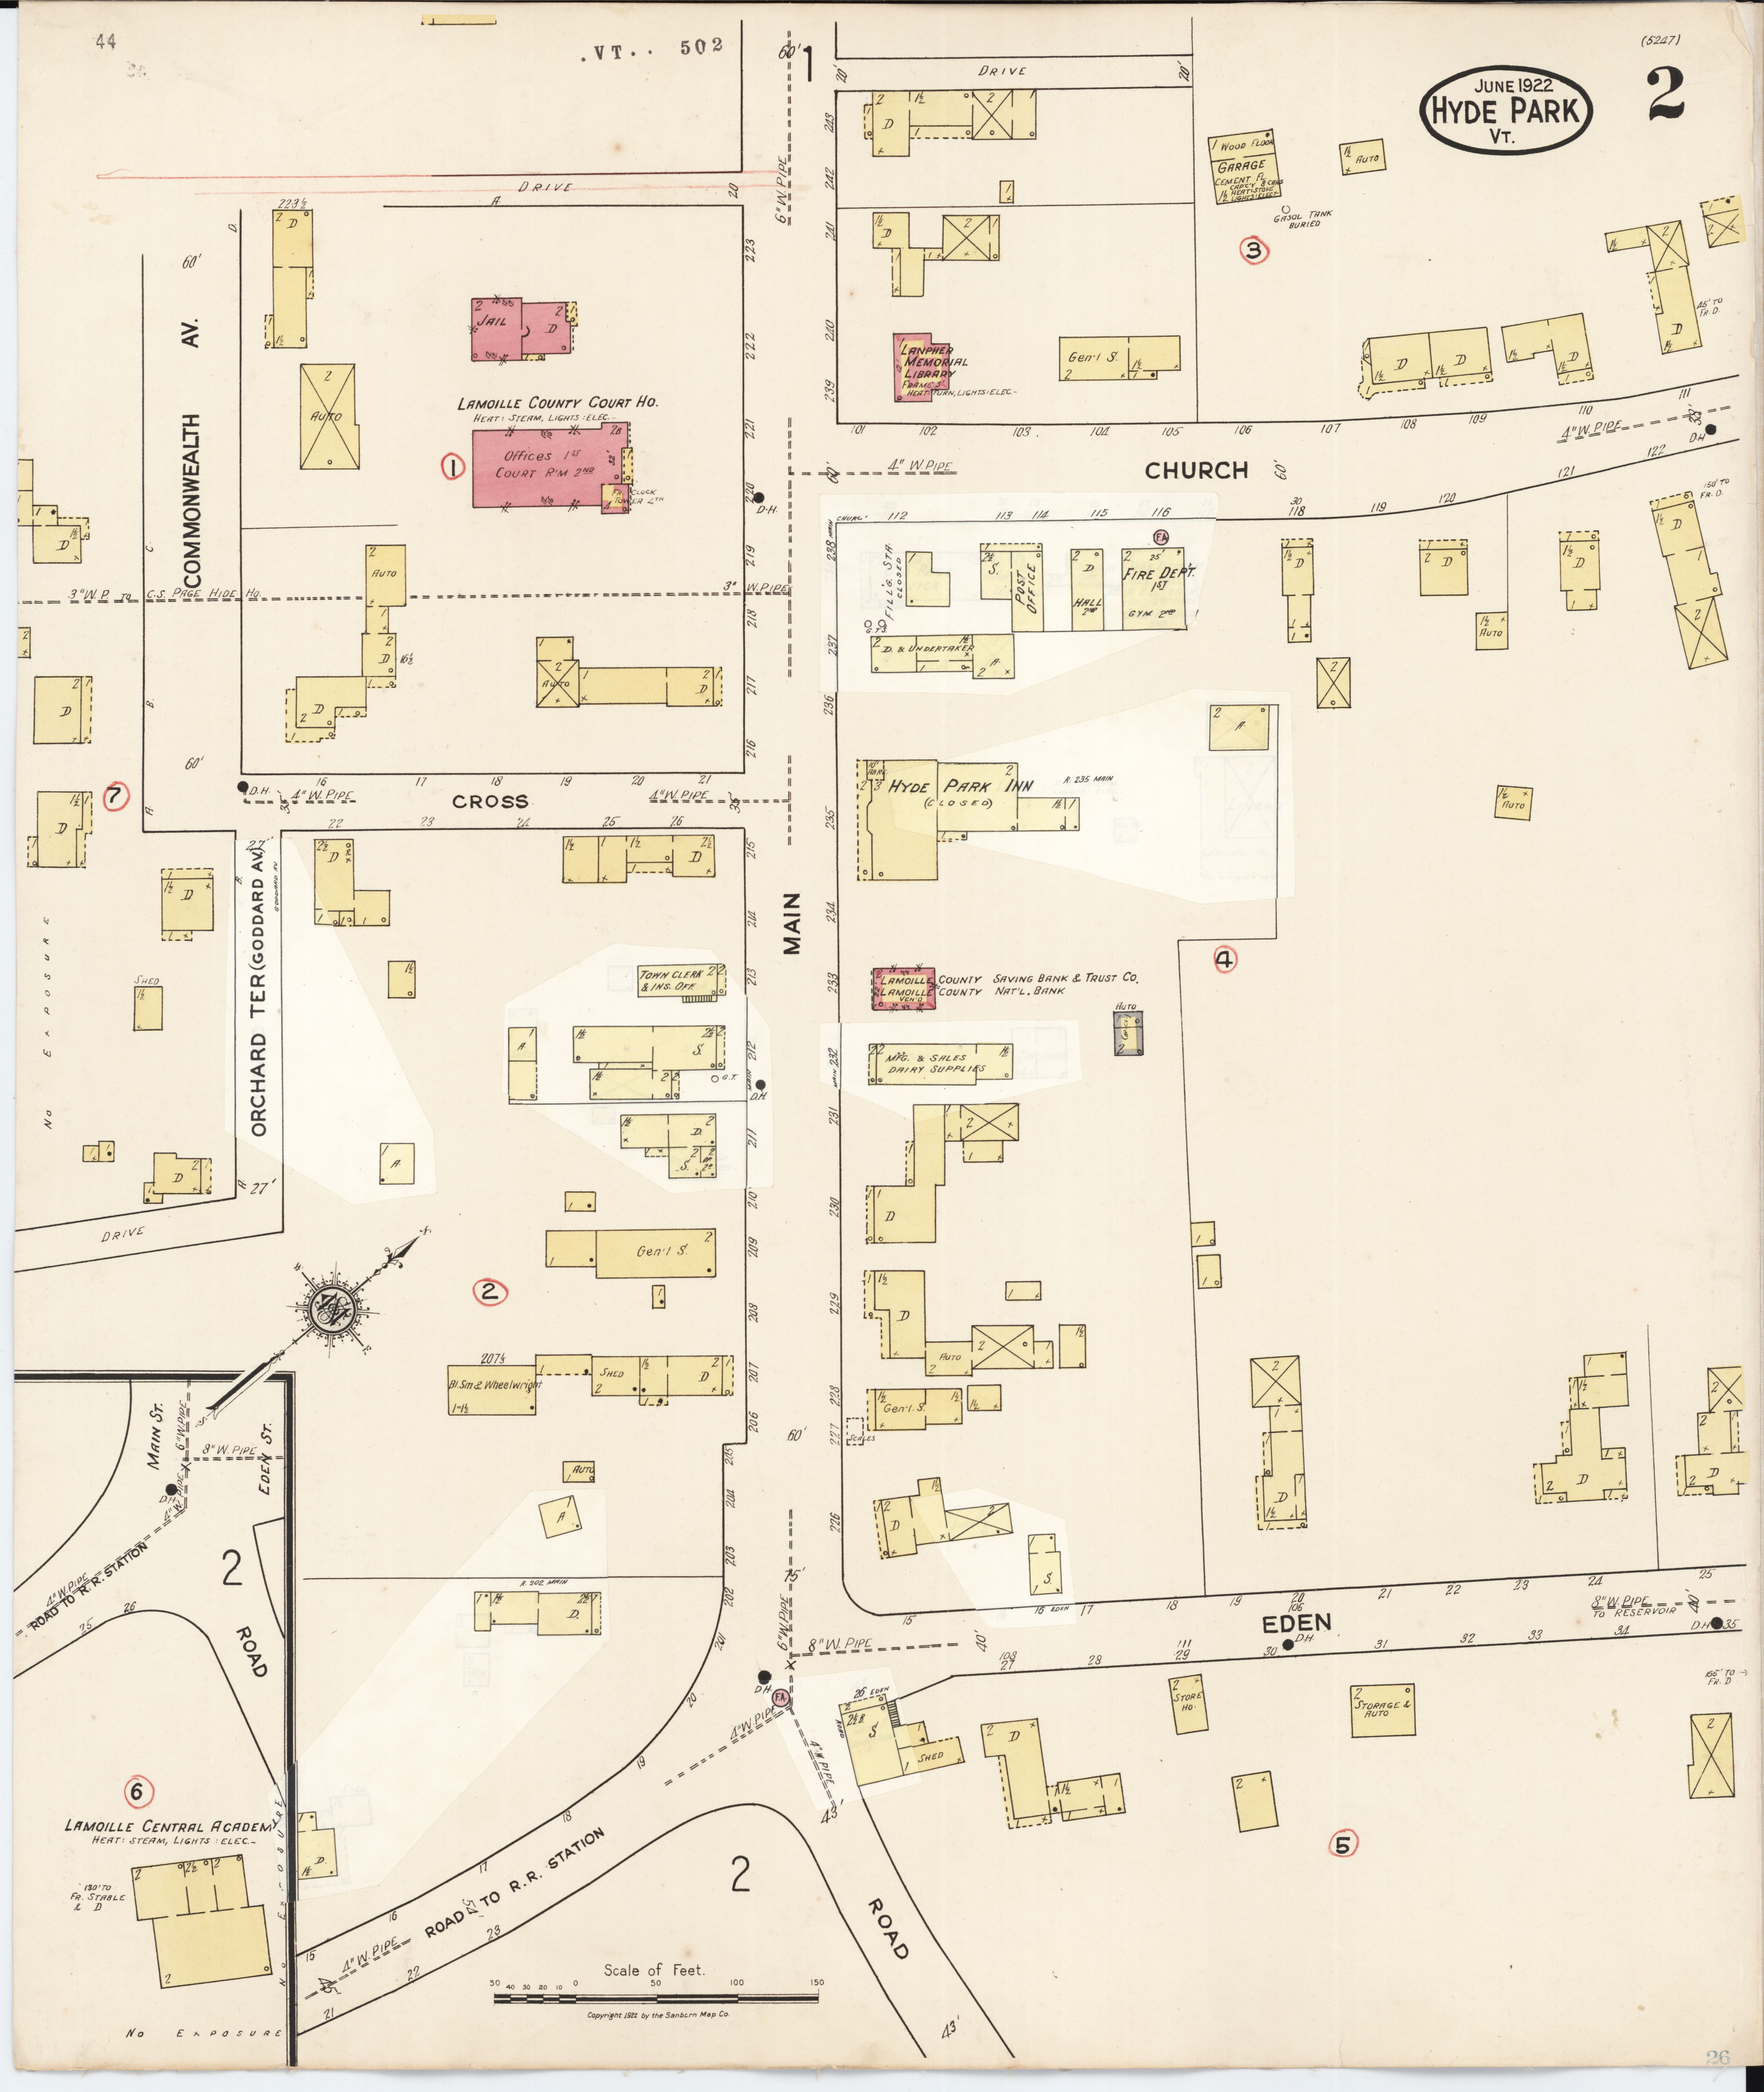 High Park Fire Map.File Sanborn Fire Insurance Map From Hyde Park Lamoille County